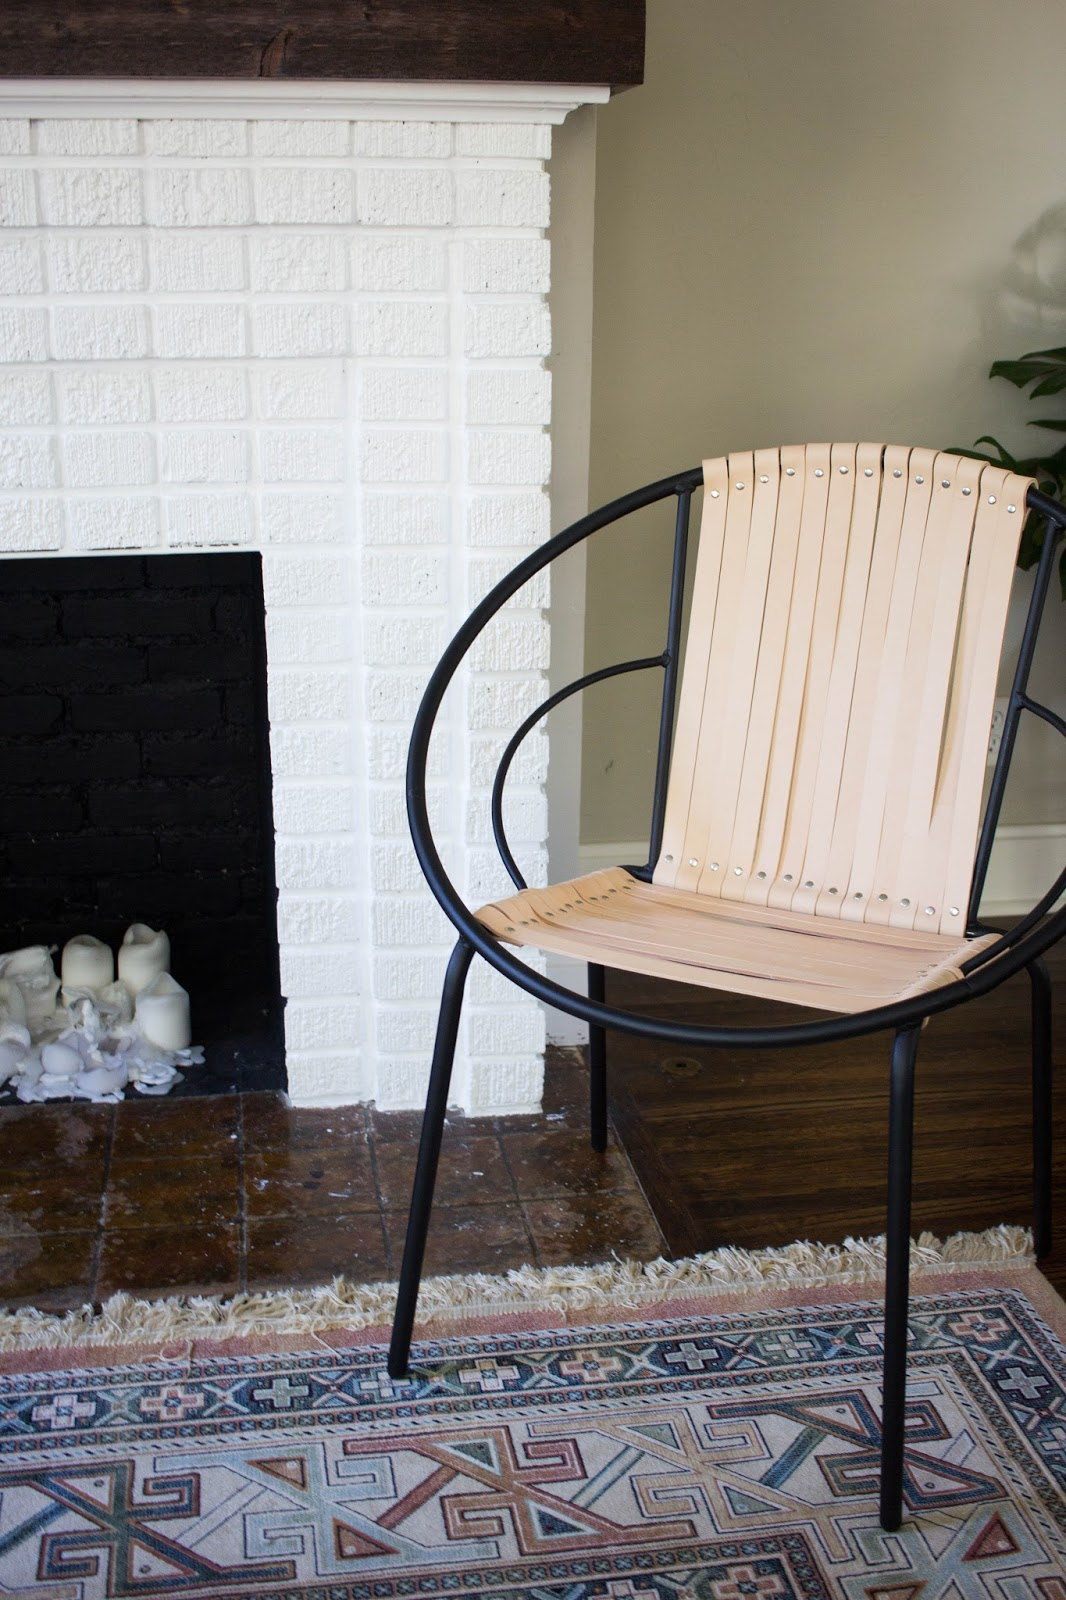 Acapulco chair living room - Diy Leather Acapulco Chair Target Hack